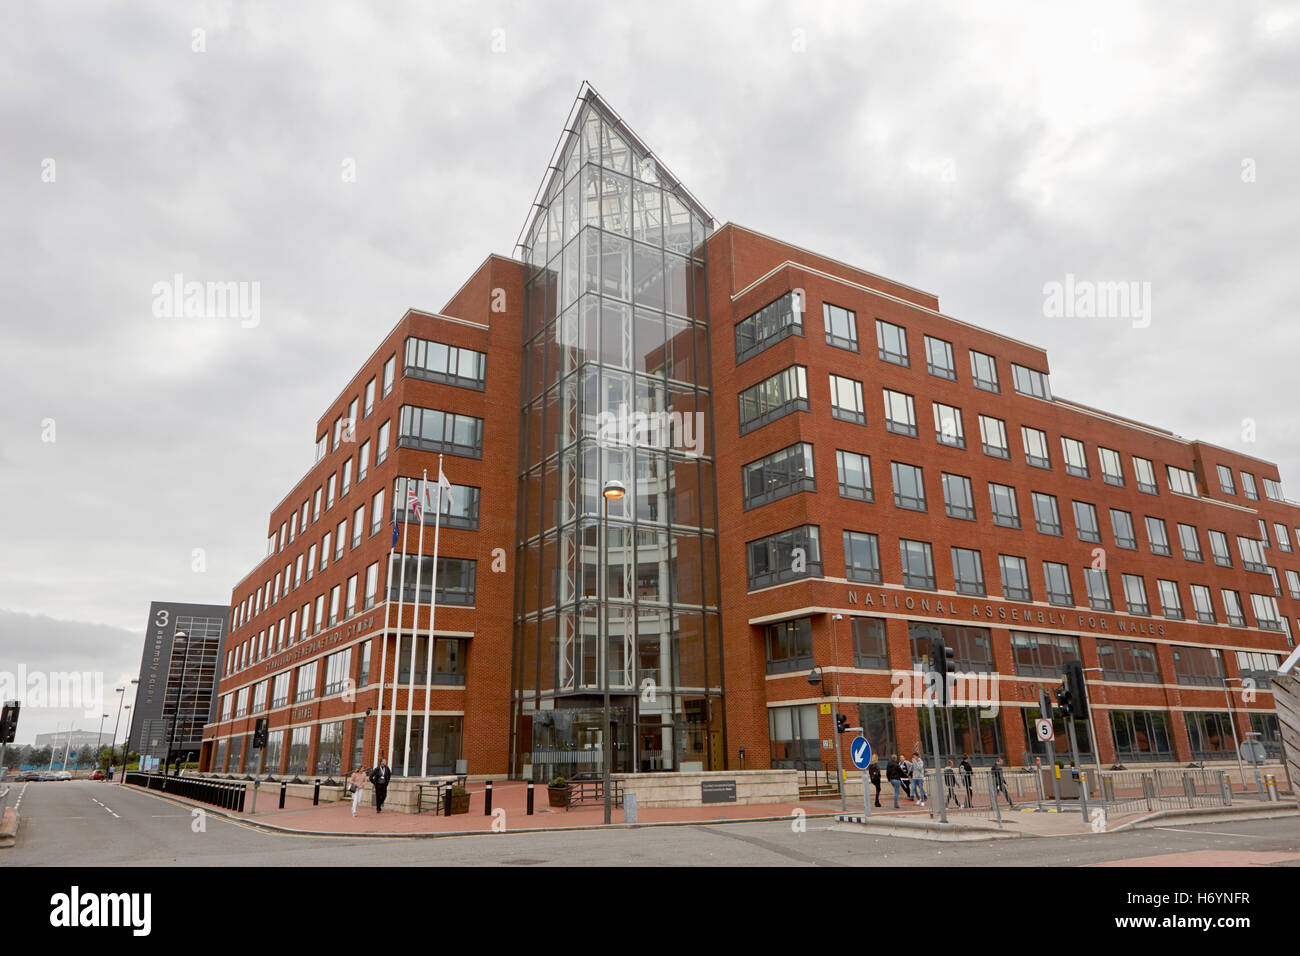 Ty Howell national assembly for wales building Cardiff Bay Wales United Kingdom - Stock Image